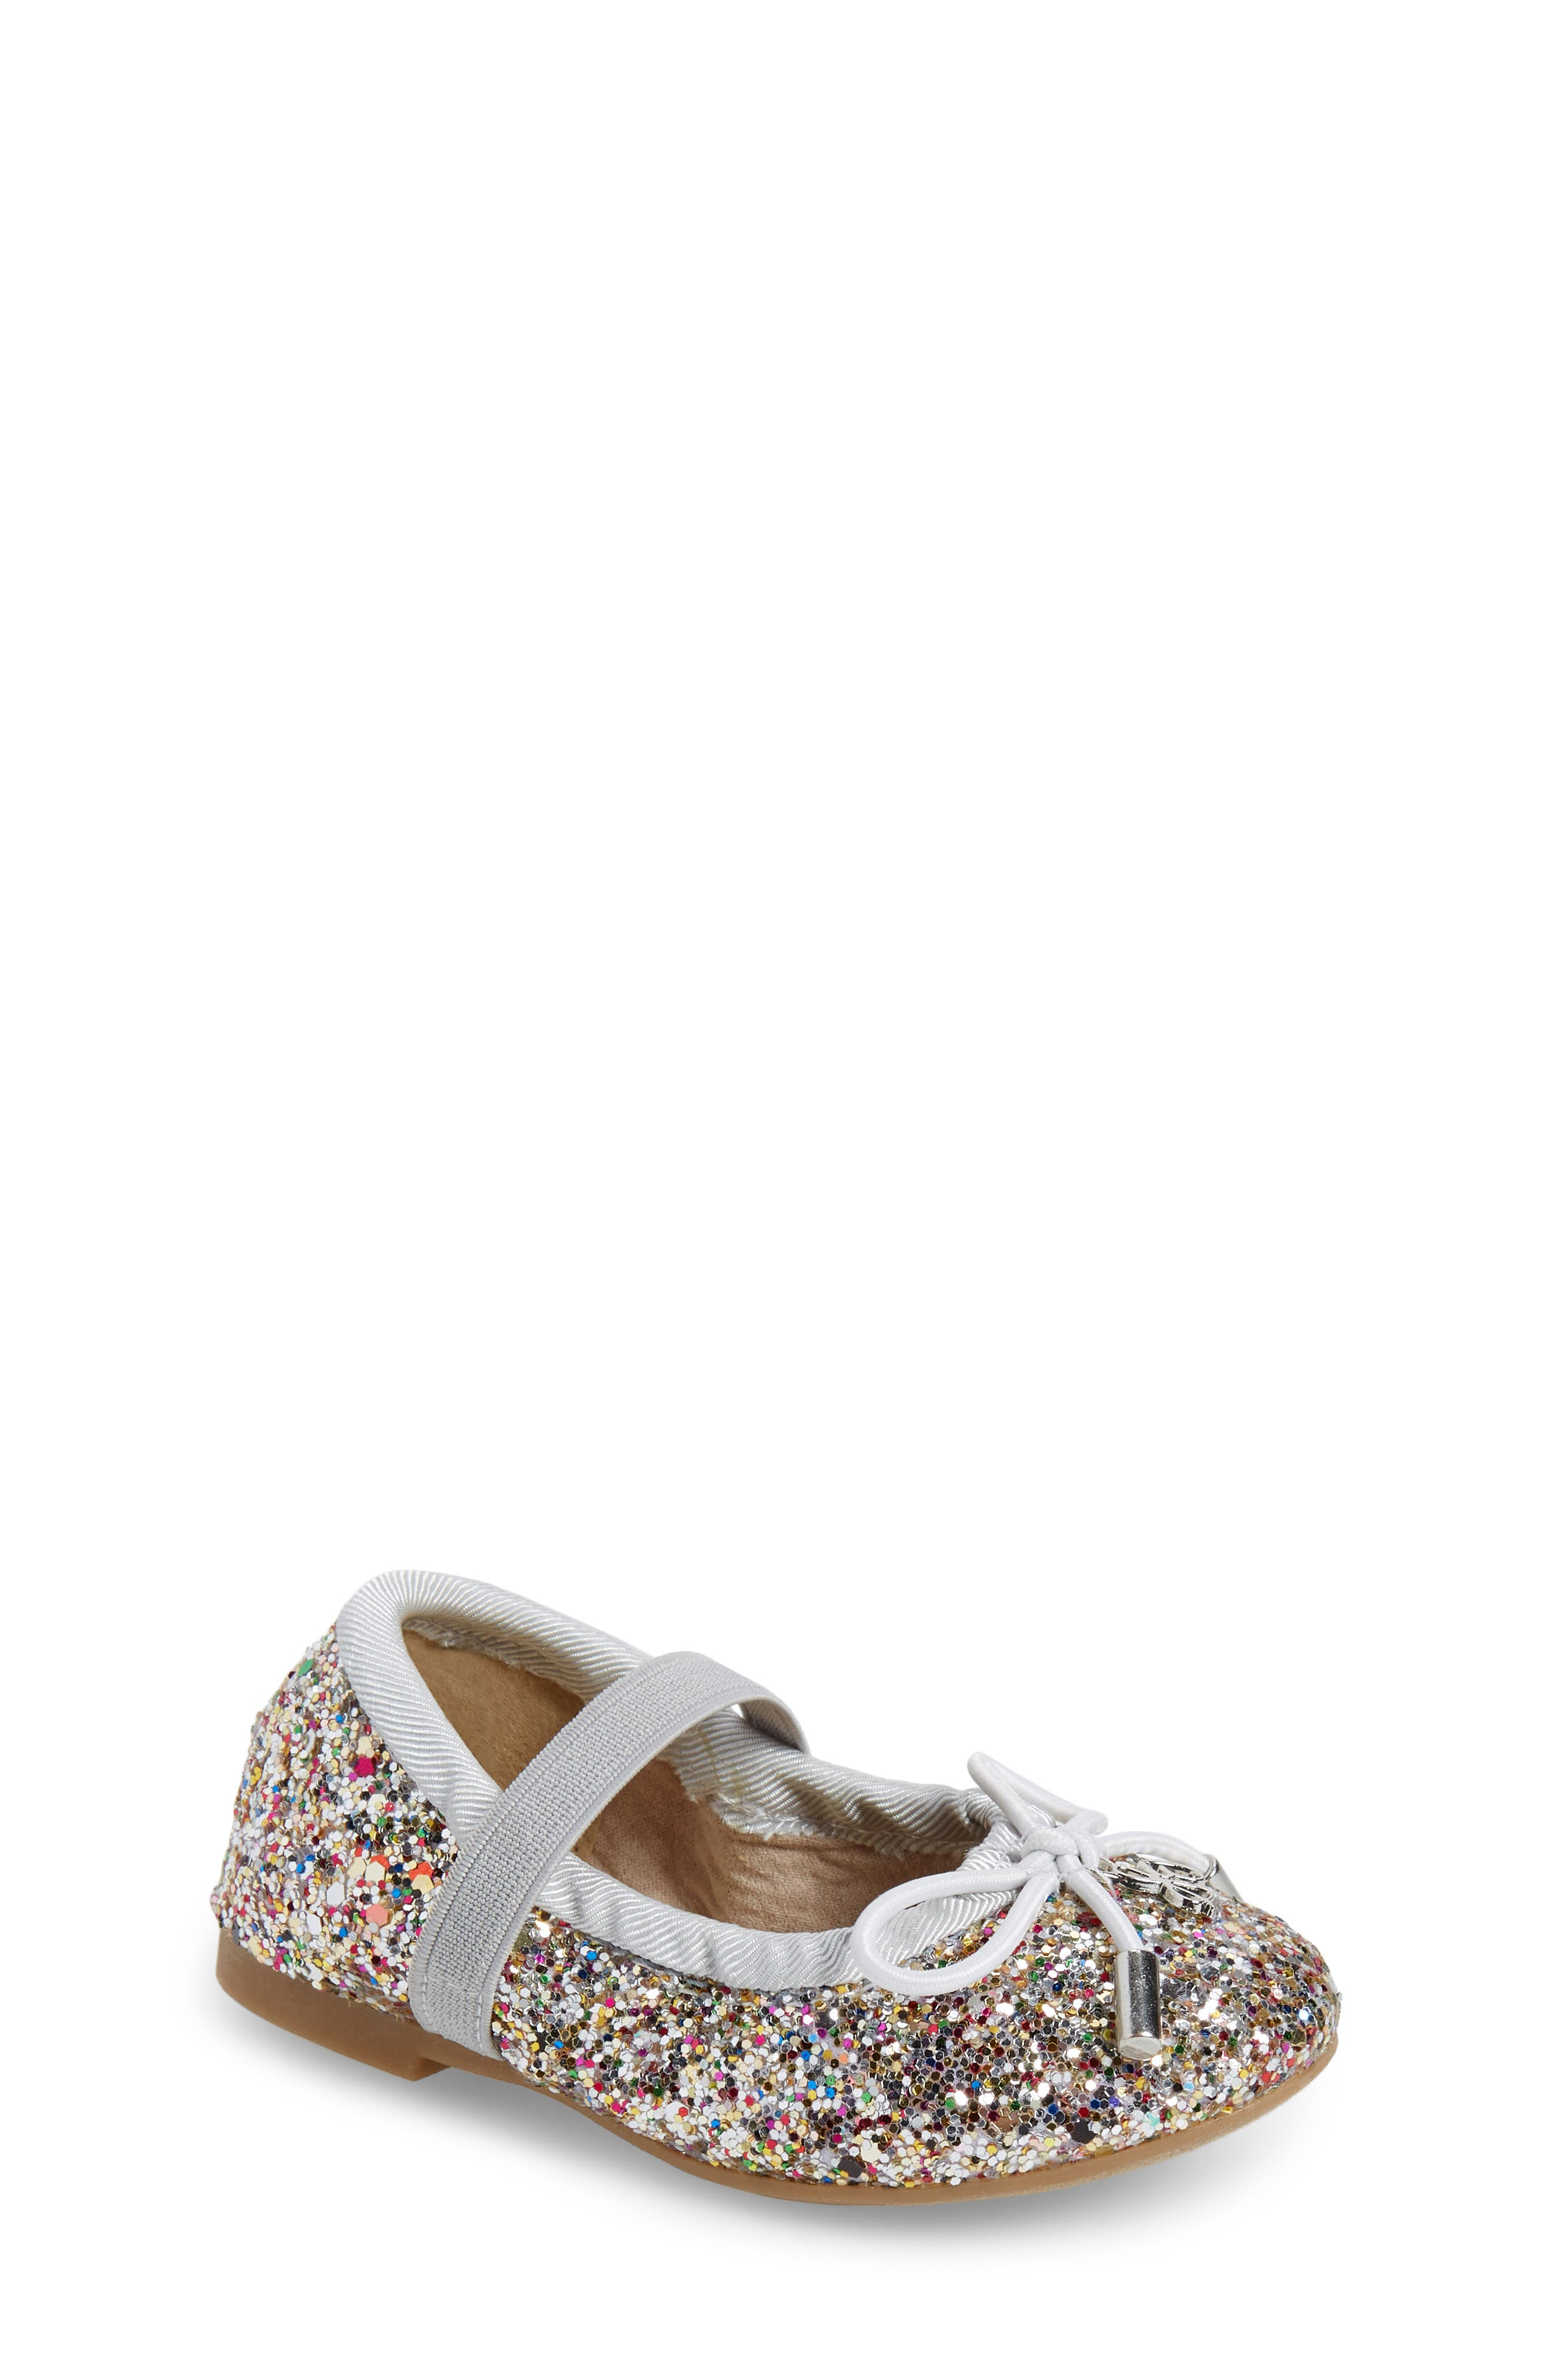 Sam Edelman 'Felicia' Mary Jane Ballet Flat (Toddler)